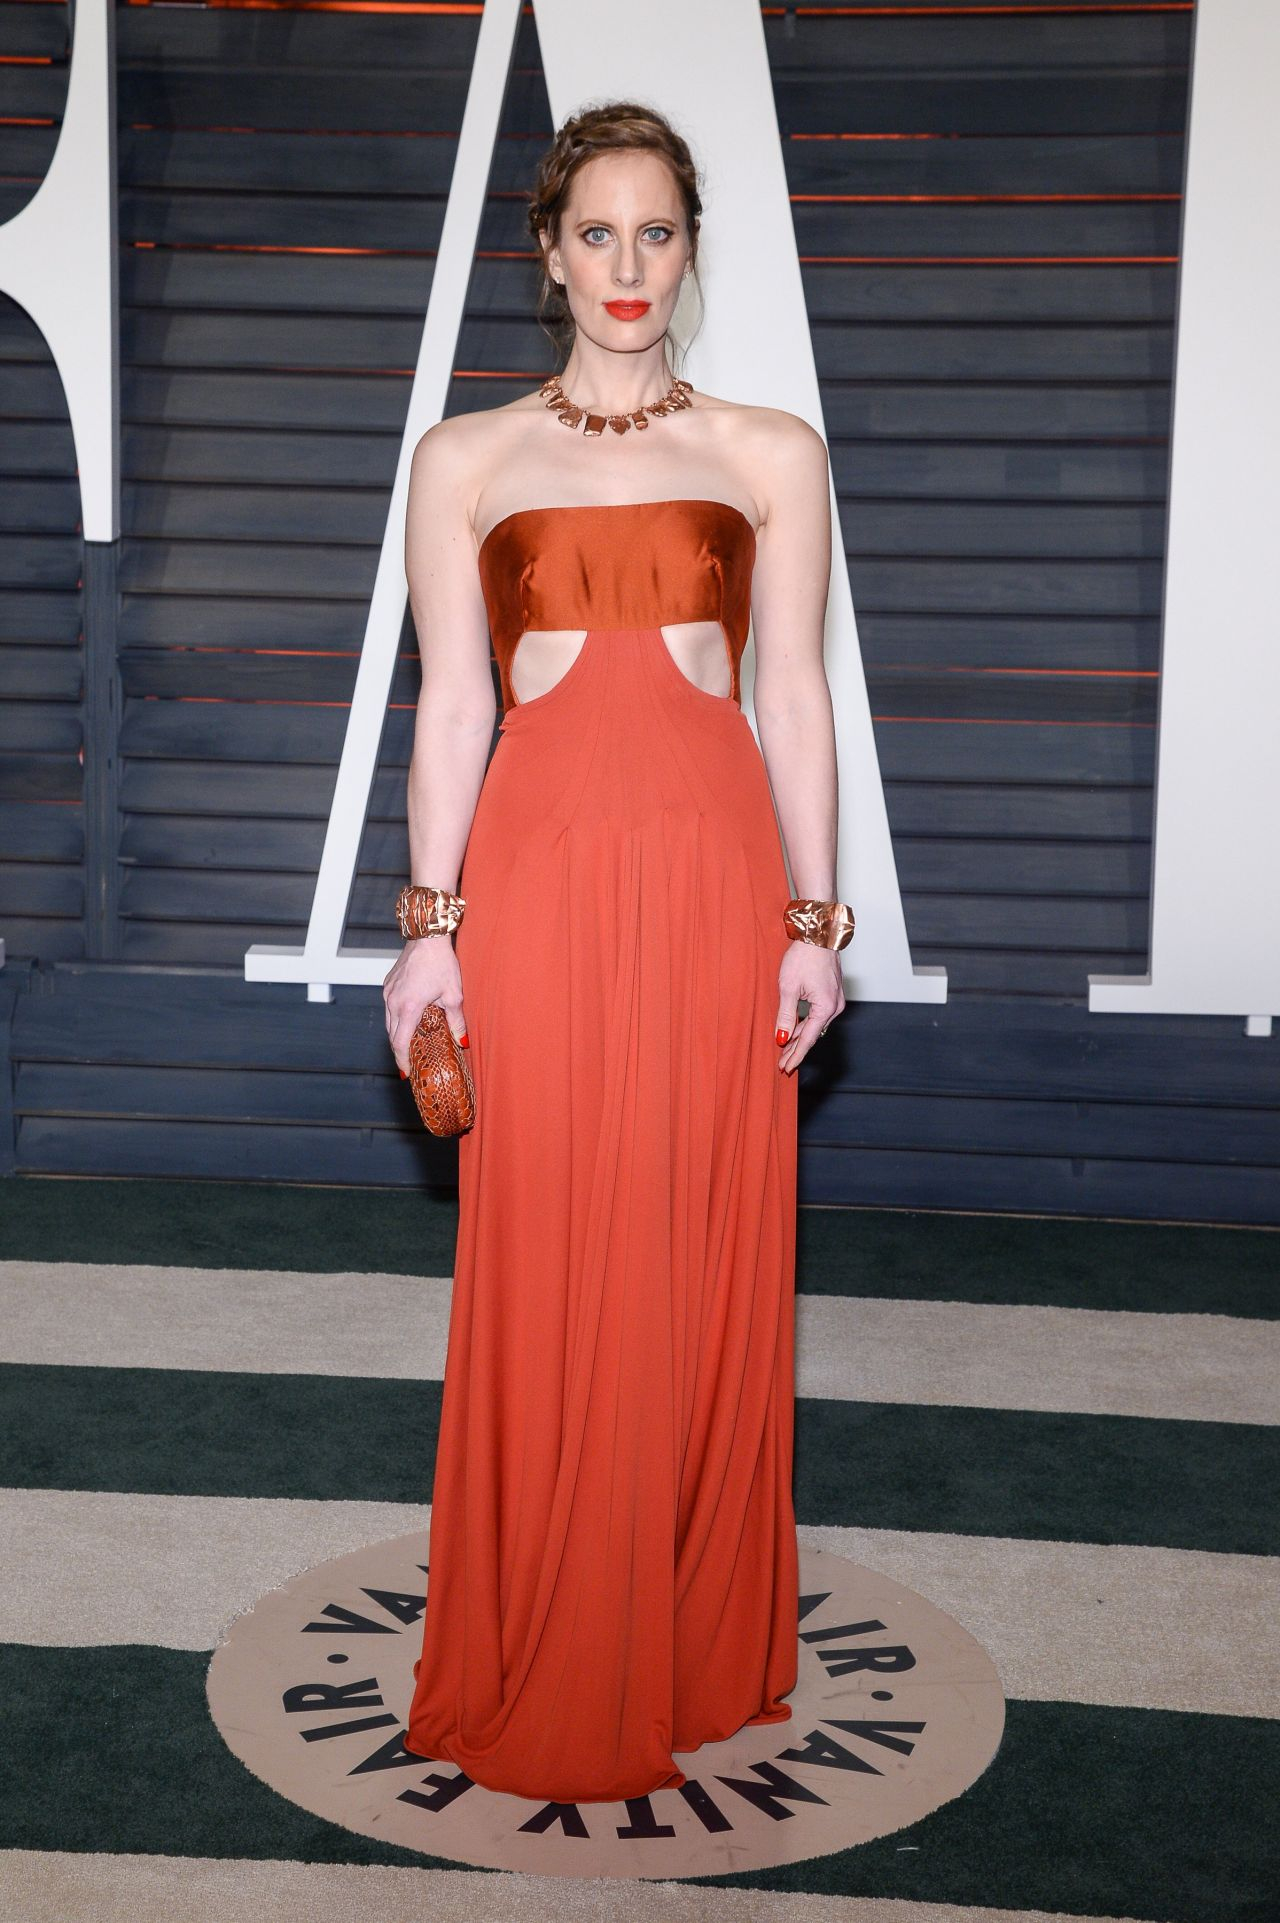 liz-goldwyn-vanity-fair-oscar-2016-party-1